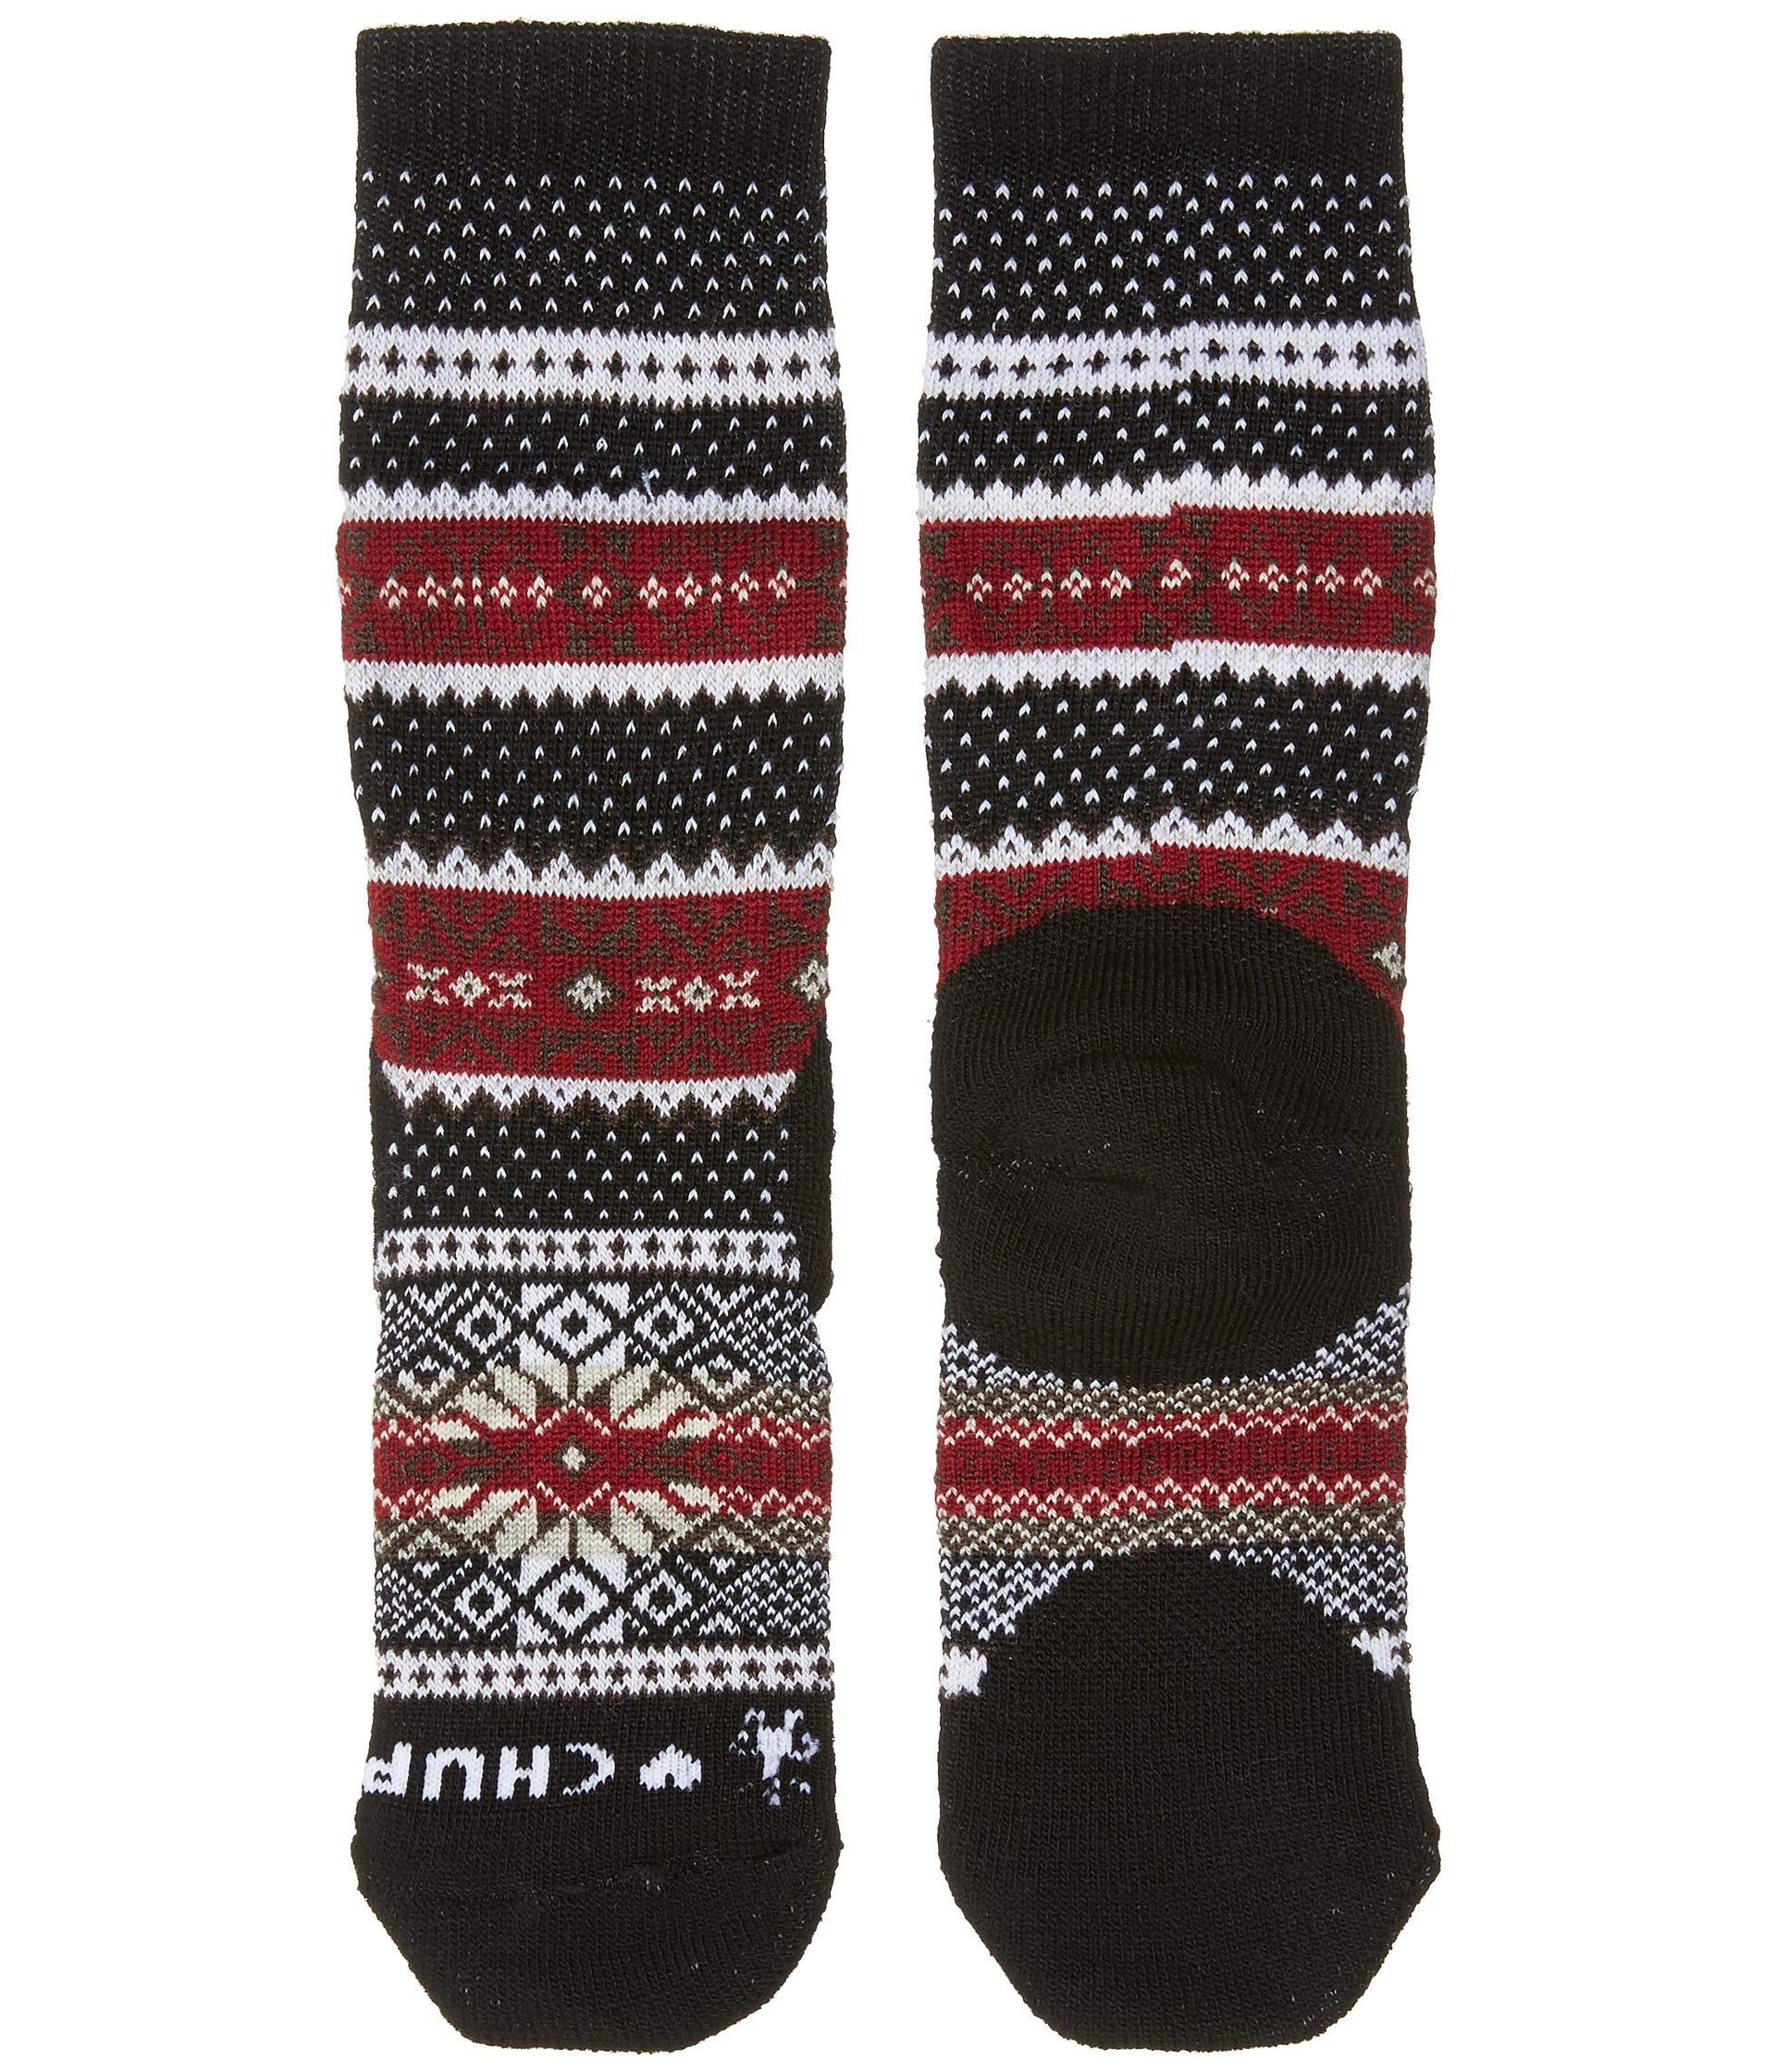 Crew Chup Smartwool Exc Crew Black Chup Black Smartwool Exc wBpq5t